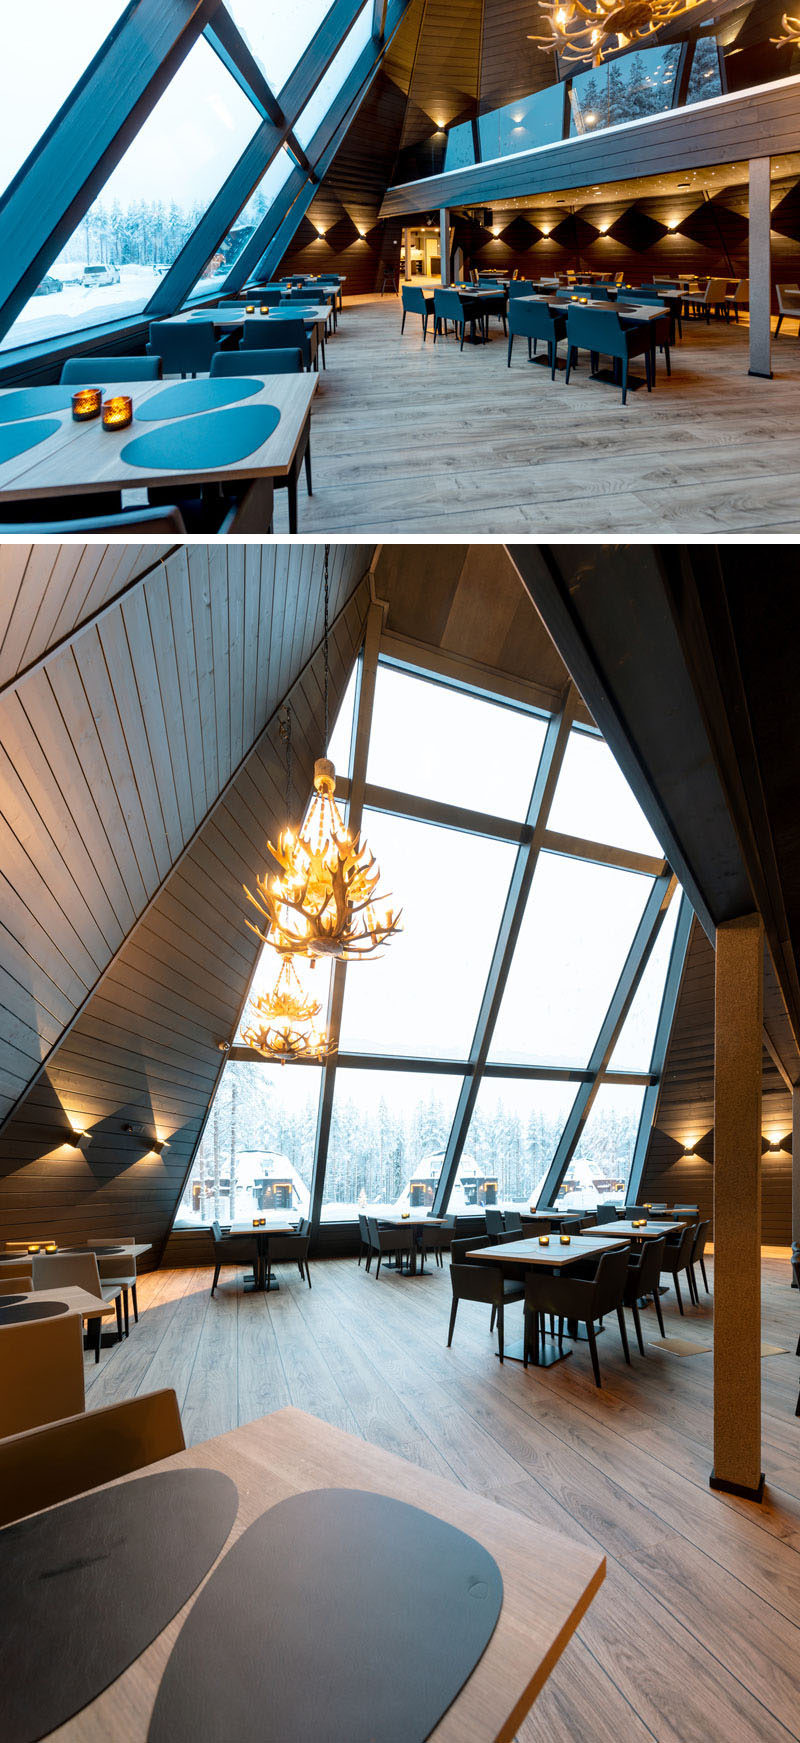 This modern restaurant opens up to a large room with high ceilings, a mezzanine level, and large sloped windows that provide a view of the outdoors and an abundance of natural light. #Restaurant #Windows